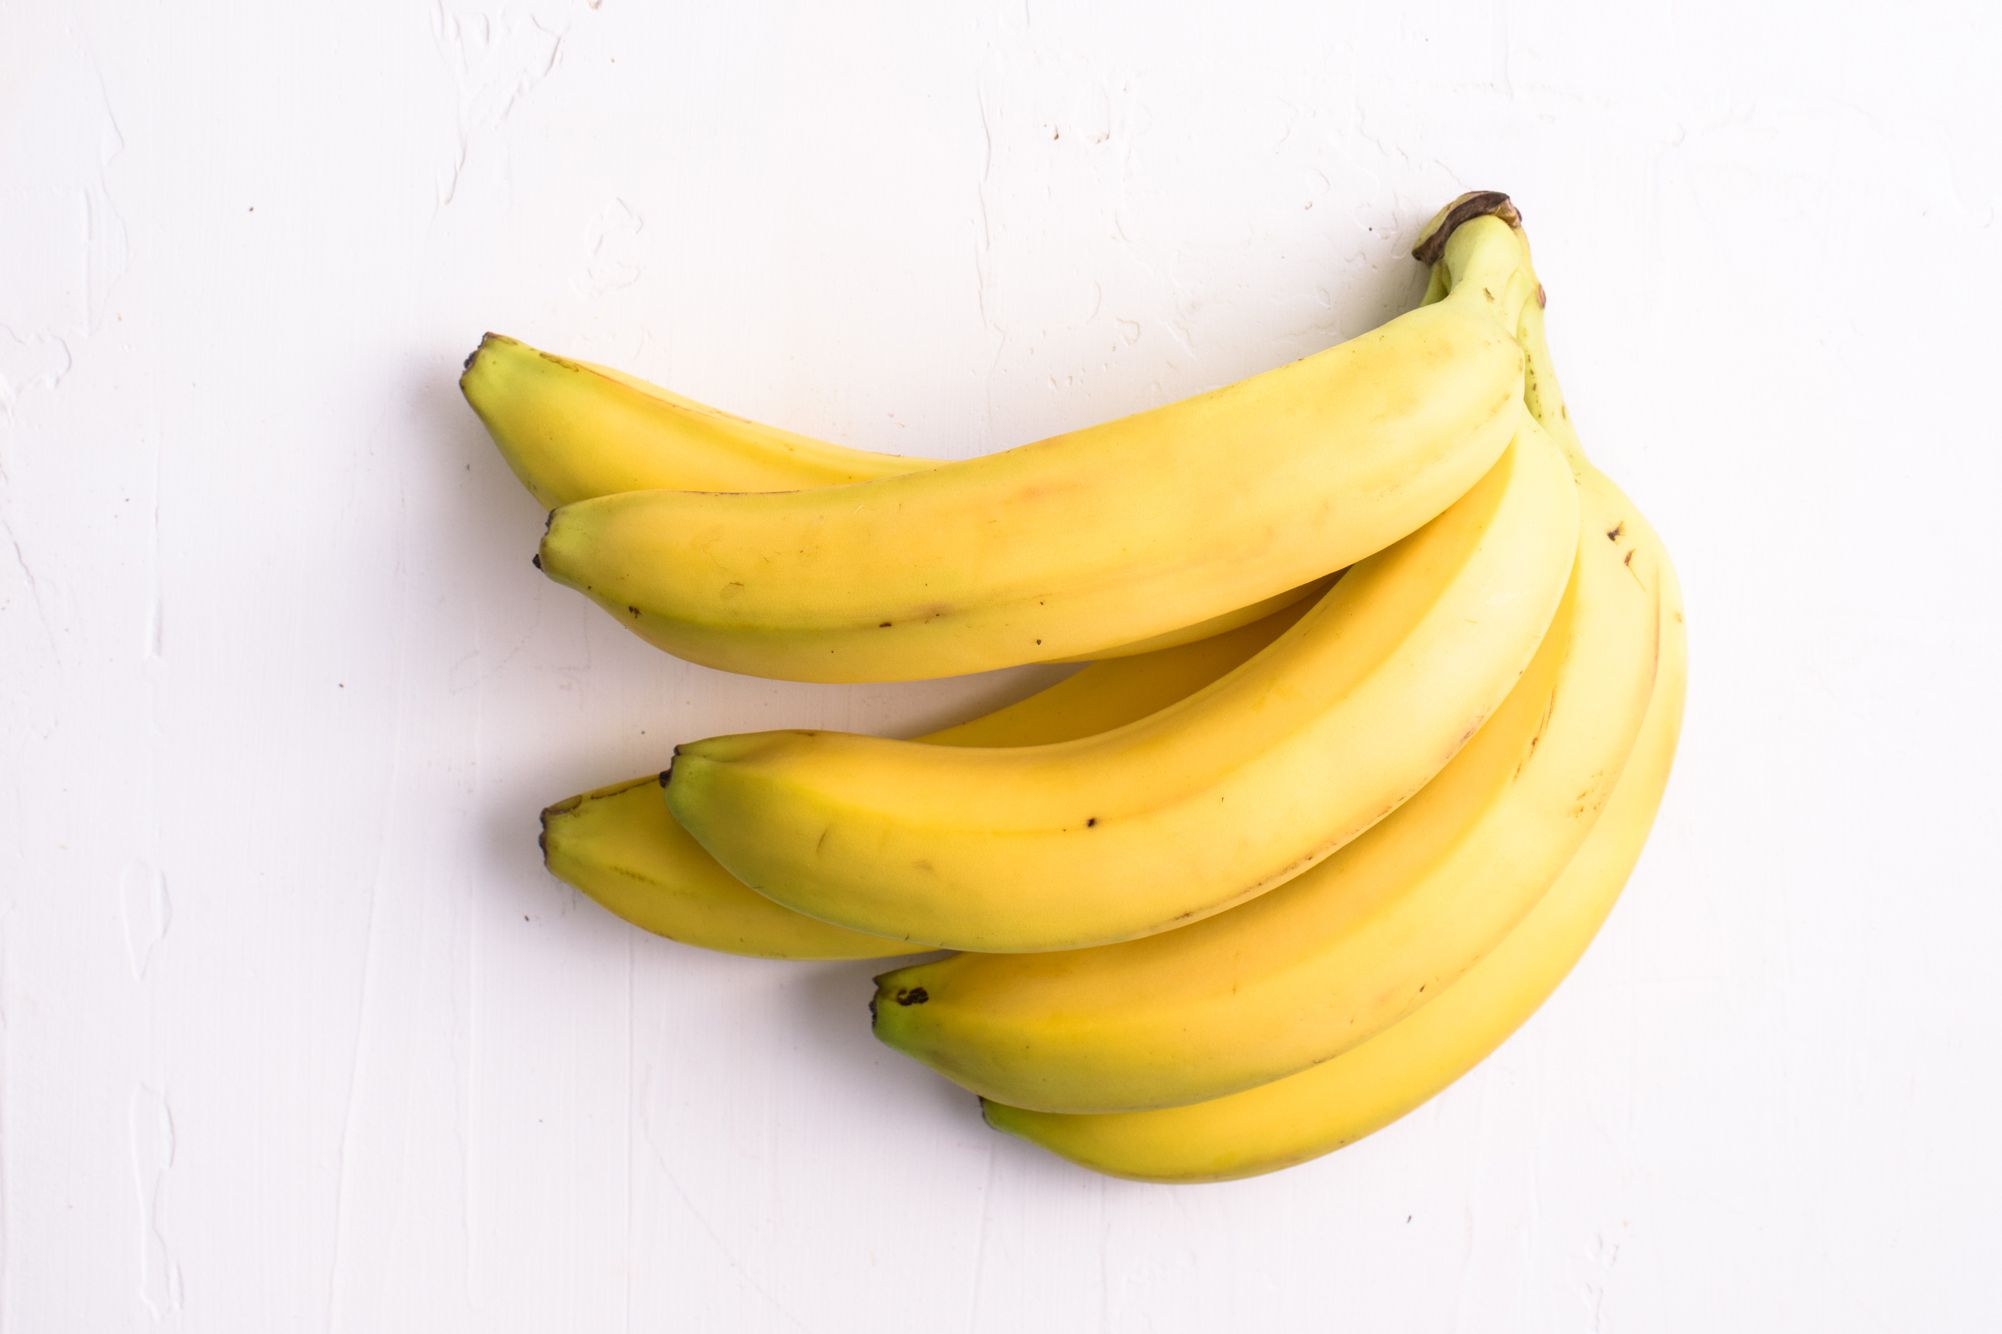 are bananas good for diets